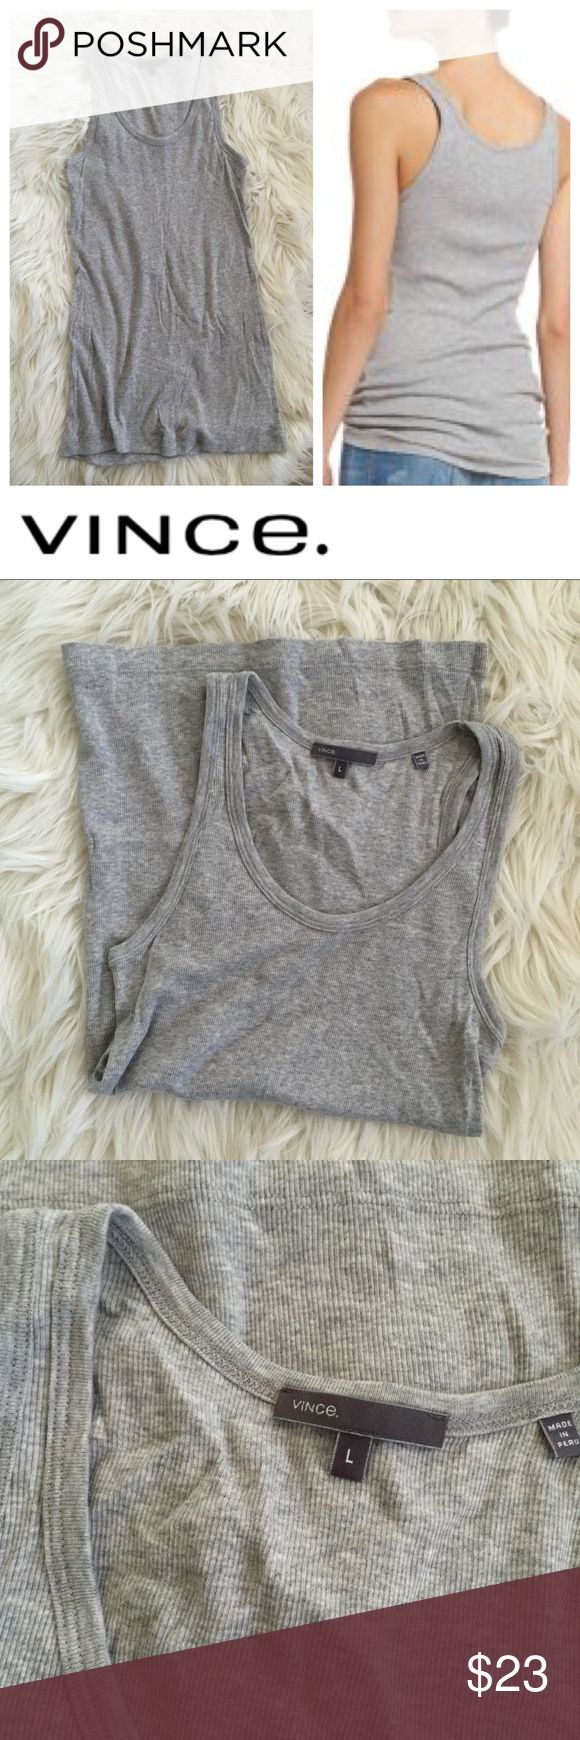 Vince Gray Ribbed Tank Adorable used classic ribbed scoop neck tank in gray by Vince -- size L. Retails for $65 still at major retailers! A closet staple -- and so soft! Bundle to save even more! Hope you enjoy 💐 Branded as Anthropologie because they carry it as well ❤️ Anthropologie Tops Tank Tops